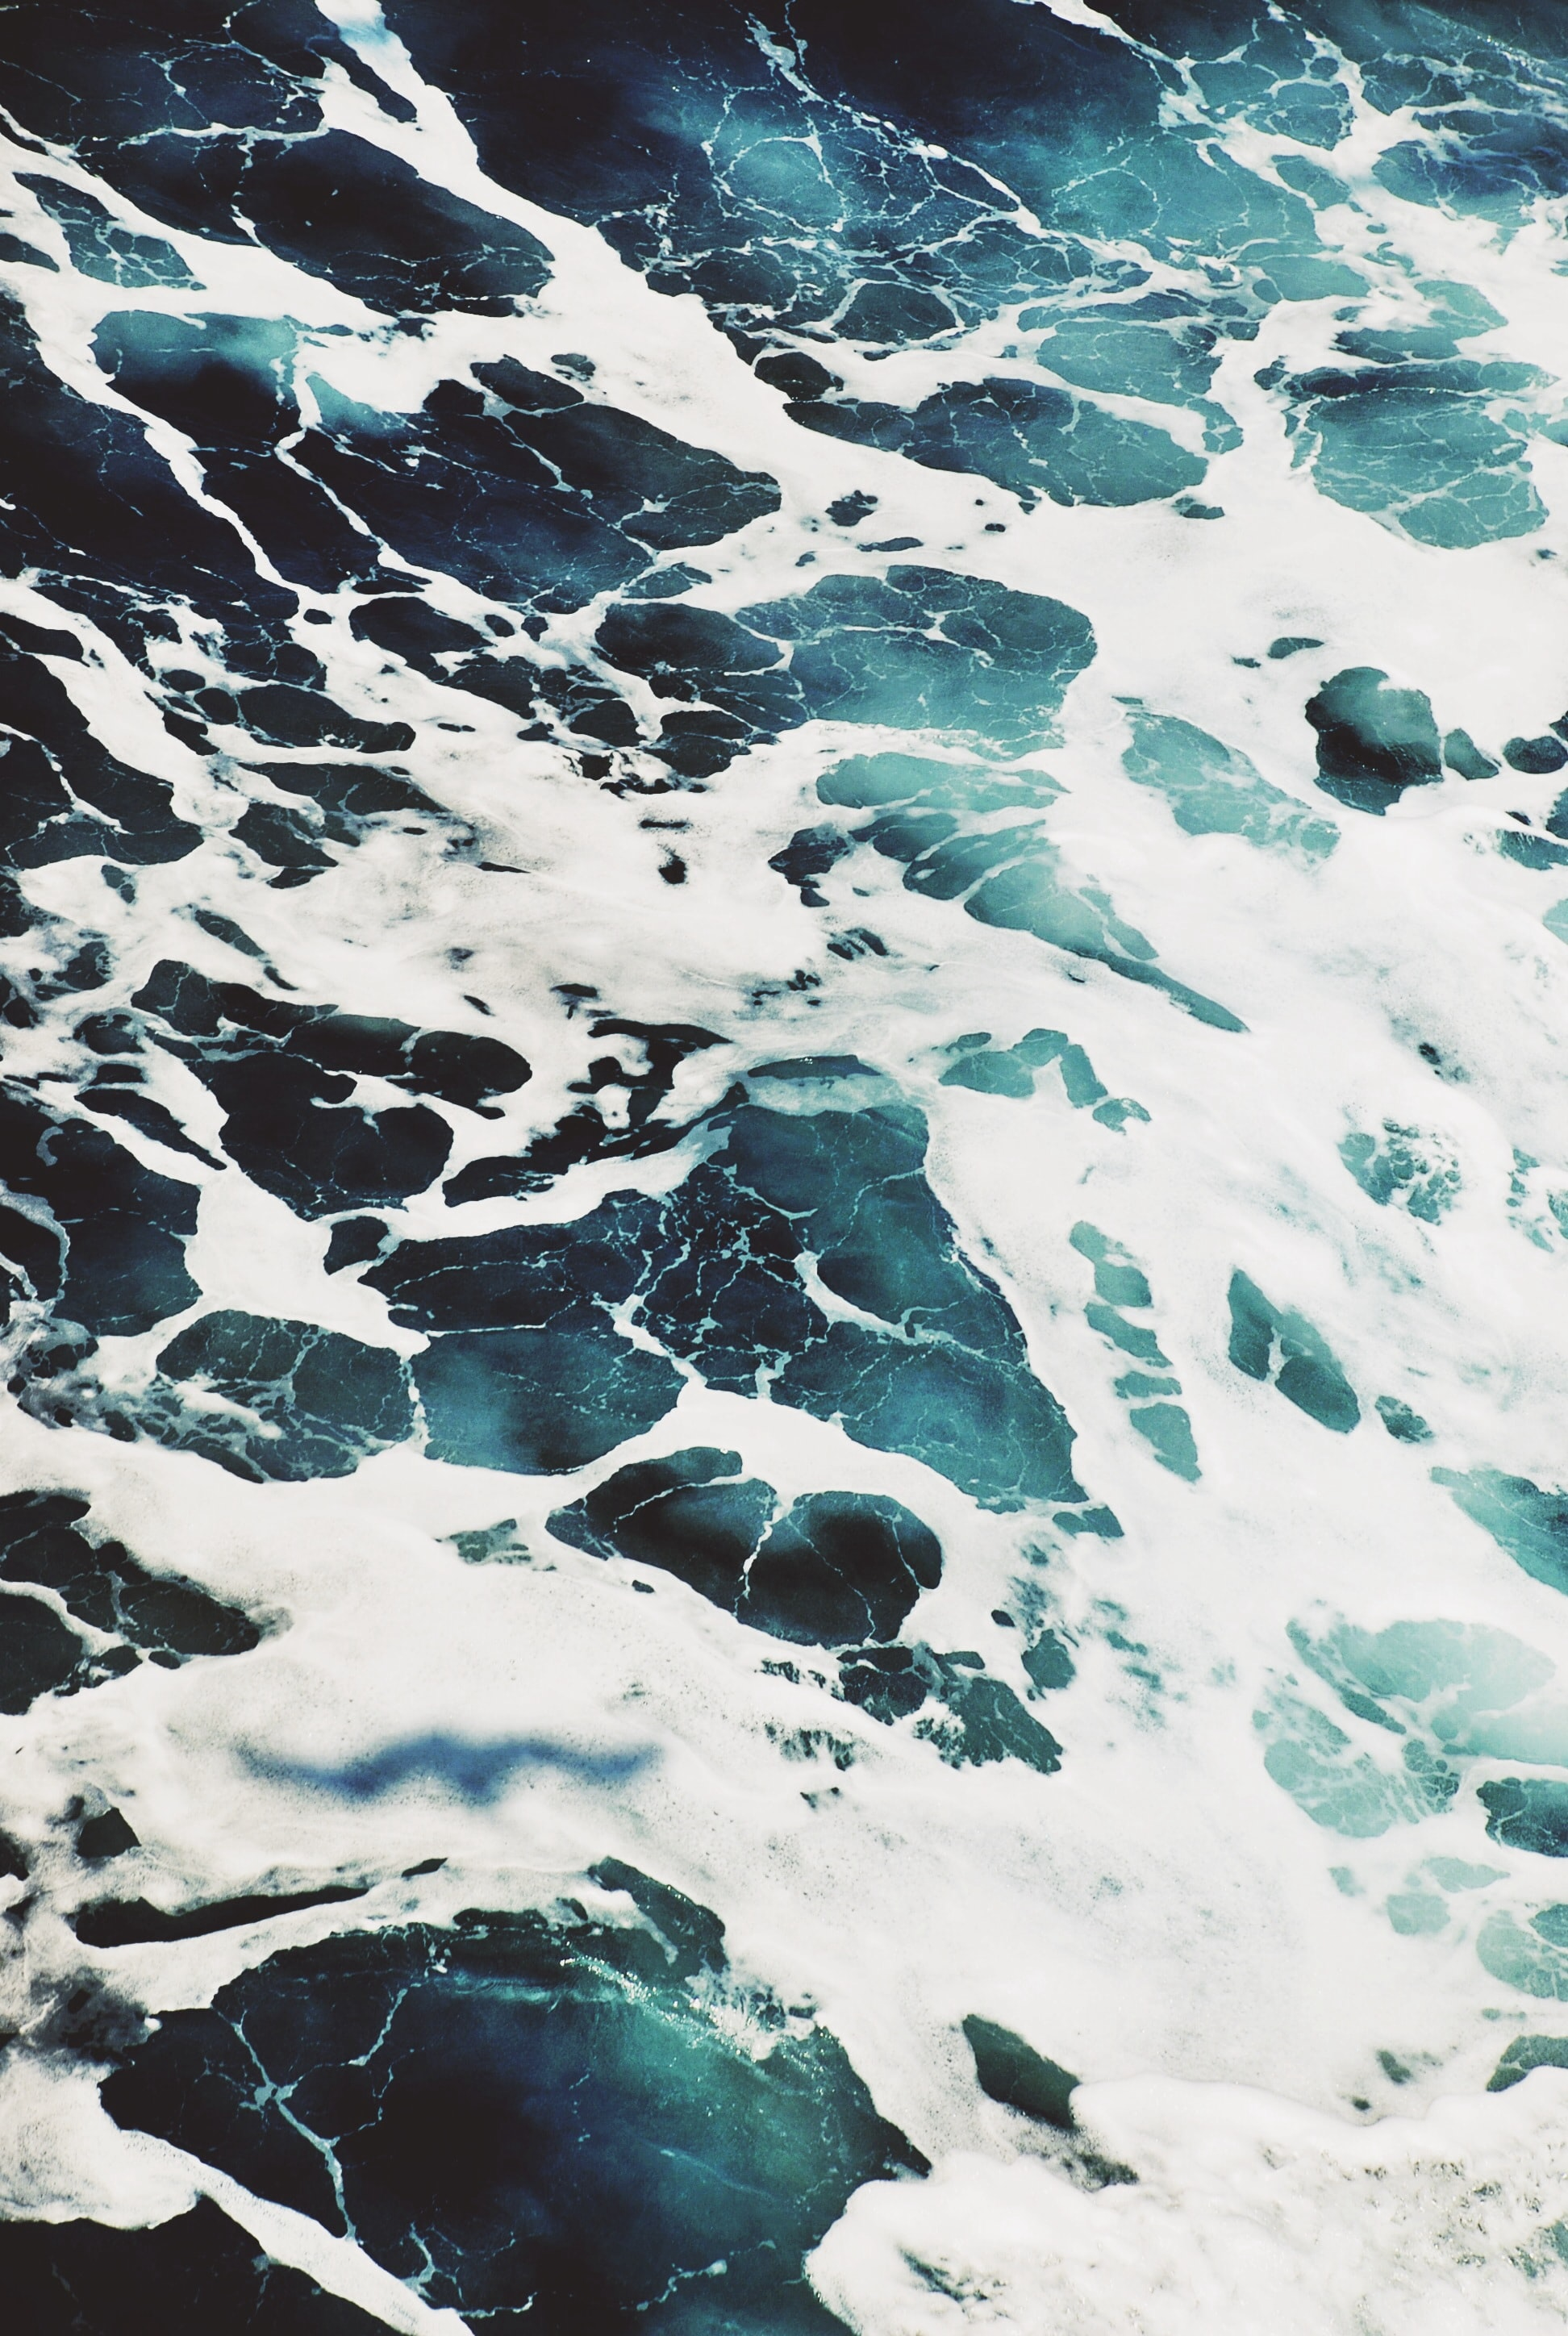 Seascape of the ocean foam